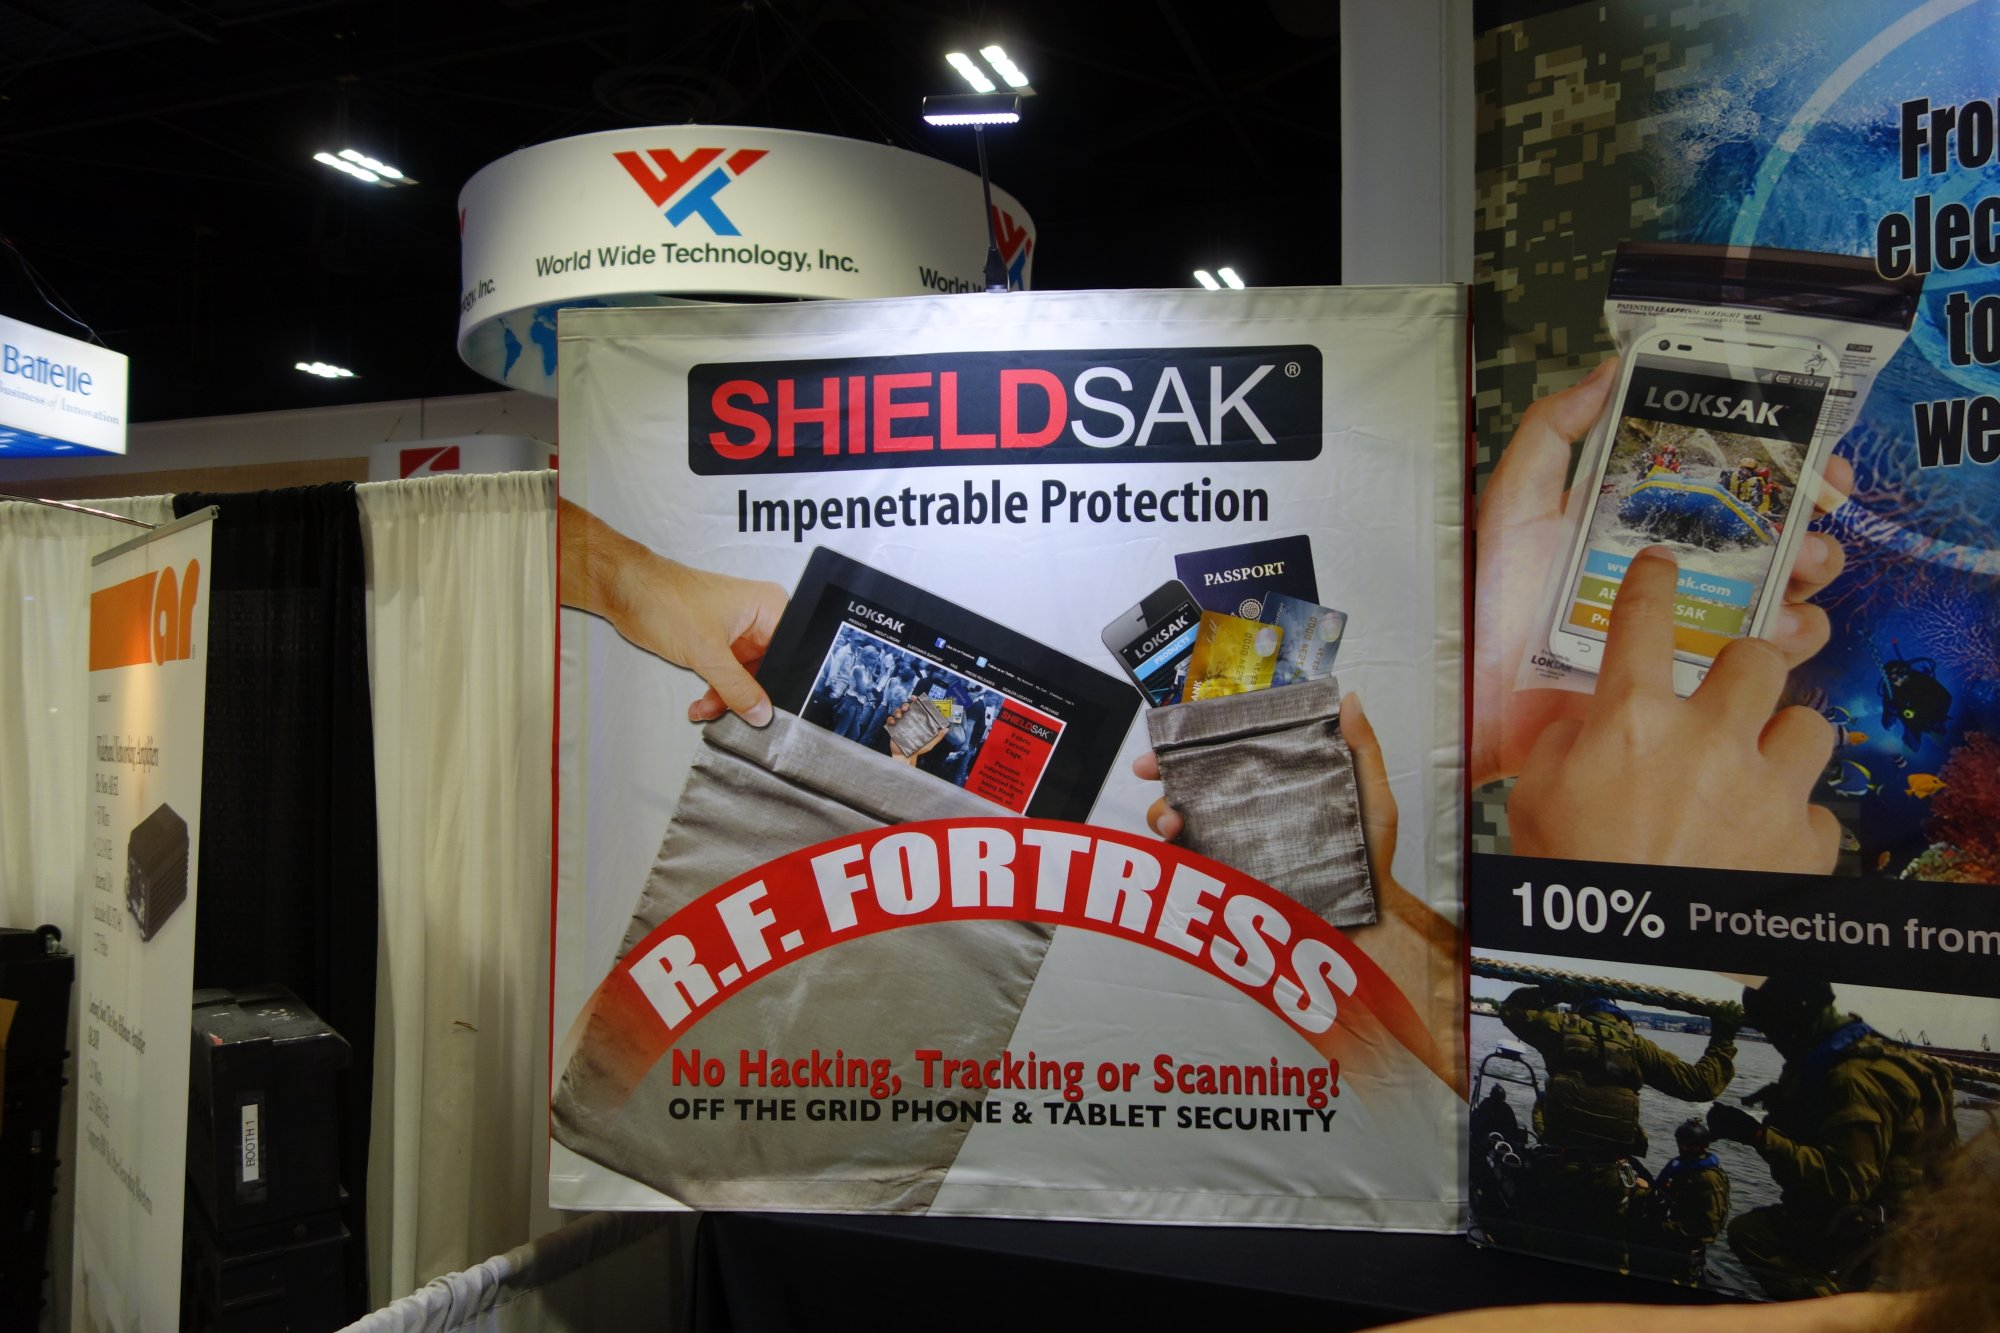 LOKSAK SHIELDSAK Flexible Fabric Faraday Cage Anti RF Protective Bag RF Fortress Radio Frequency Camouflage NDIA SOFIC 2014 David Crane DefenseReview.com DR 1 LOKSAK SHIELDSAK Fabric Faraday Cage/Anti RF Protective Bag Family by LOKSAK: Flexible Fabric RF Fortress Provides Anti Hacking/Anti Tracking Radio Frequency Camouflage